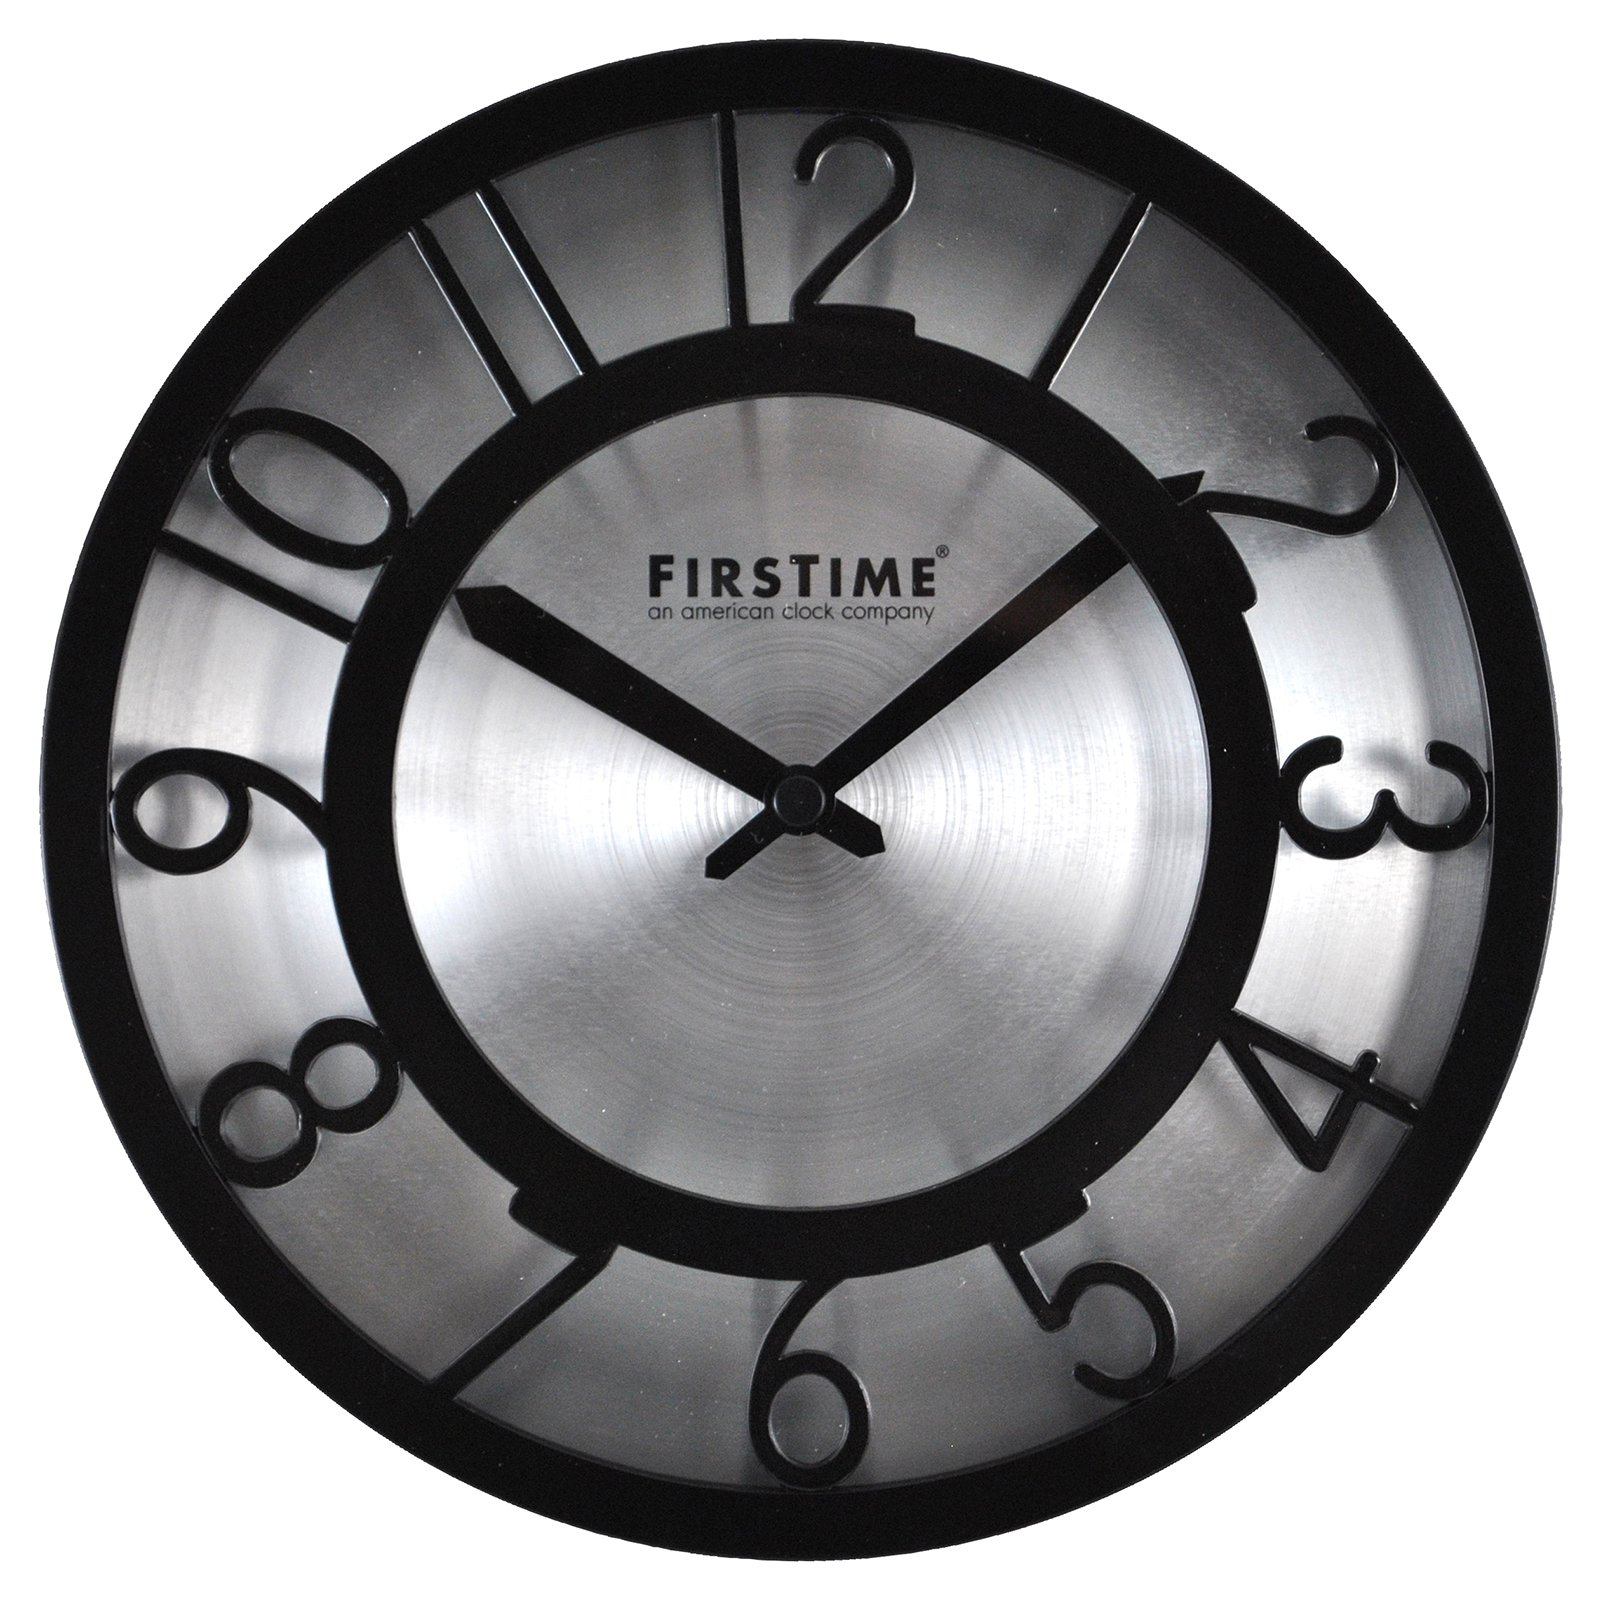 FirsTime Black on Steel Wall Clock